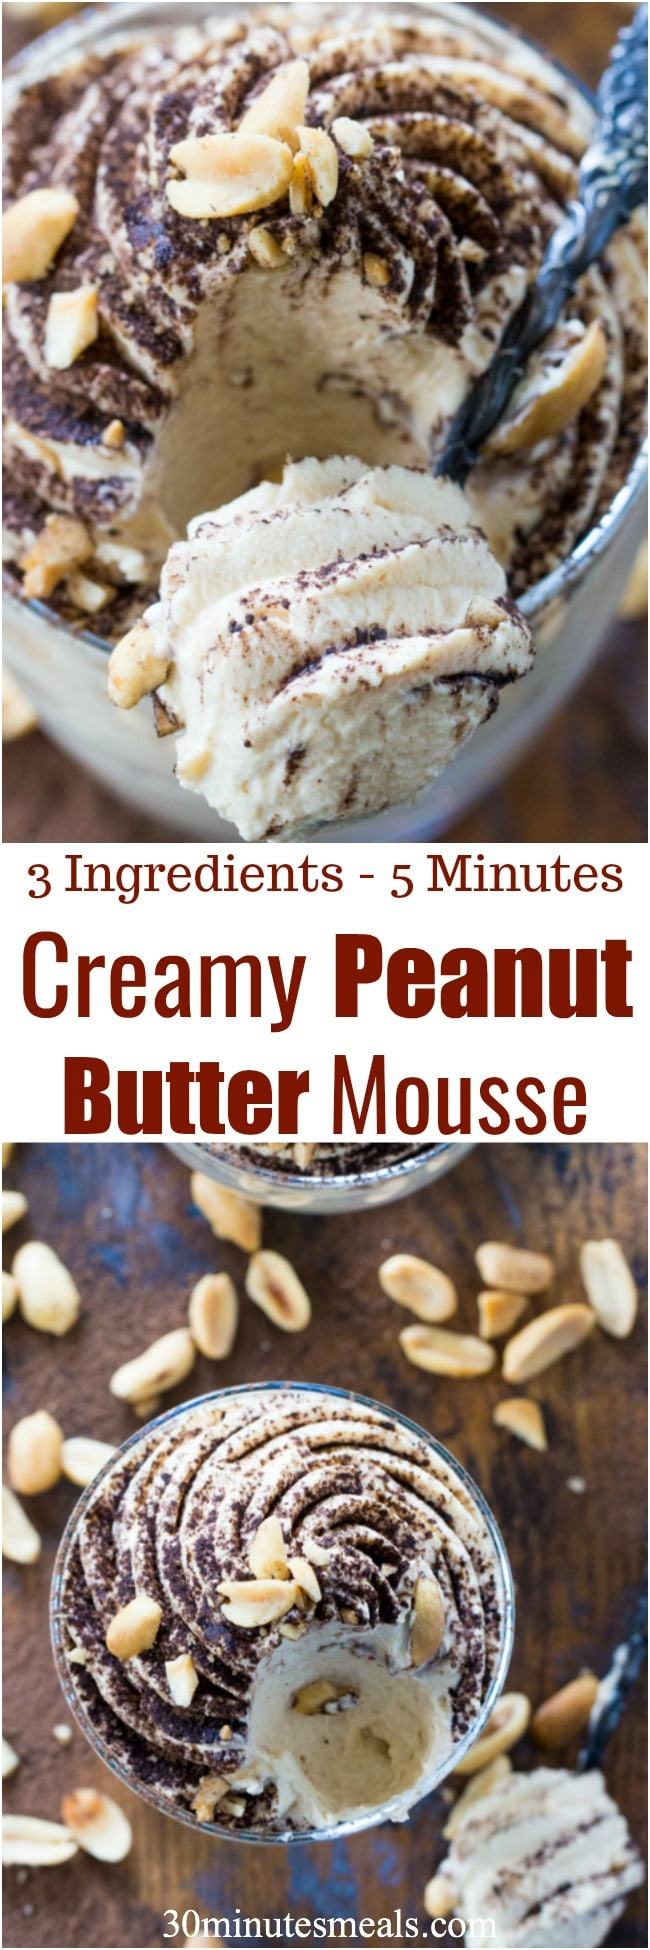 Creamy Peanut Butter Mousse is made with just 3 ingredients in less than 5 minutes. Perfect to fix a quick peanut butter craving!